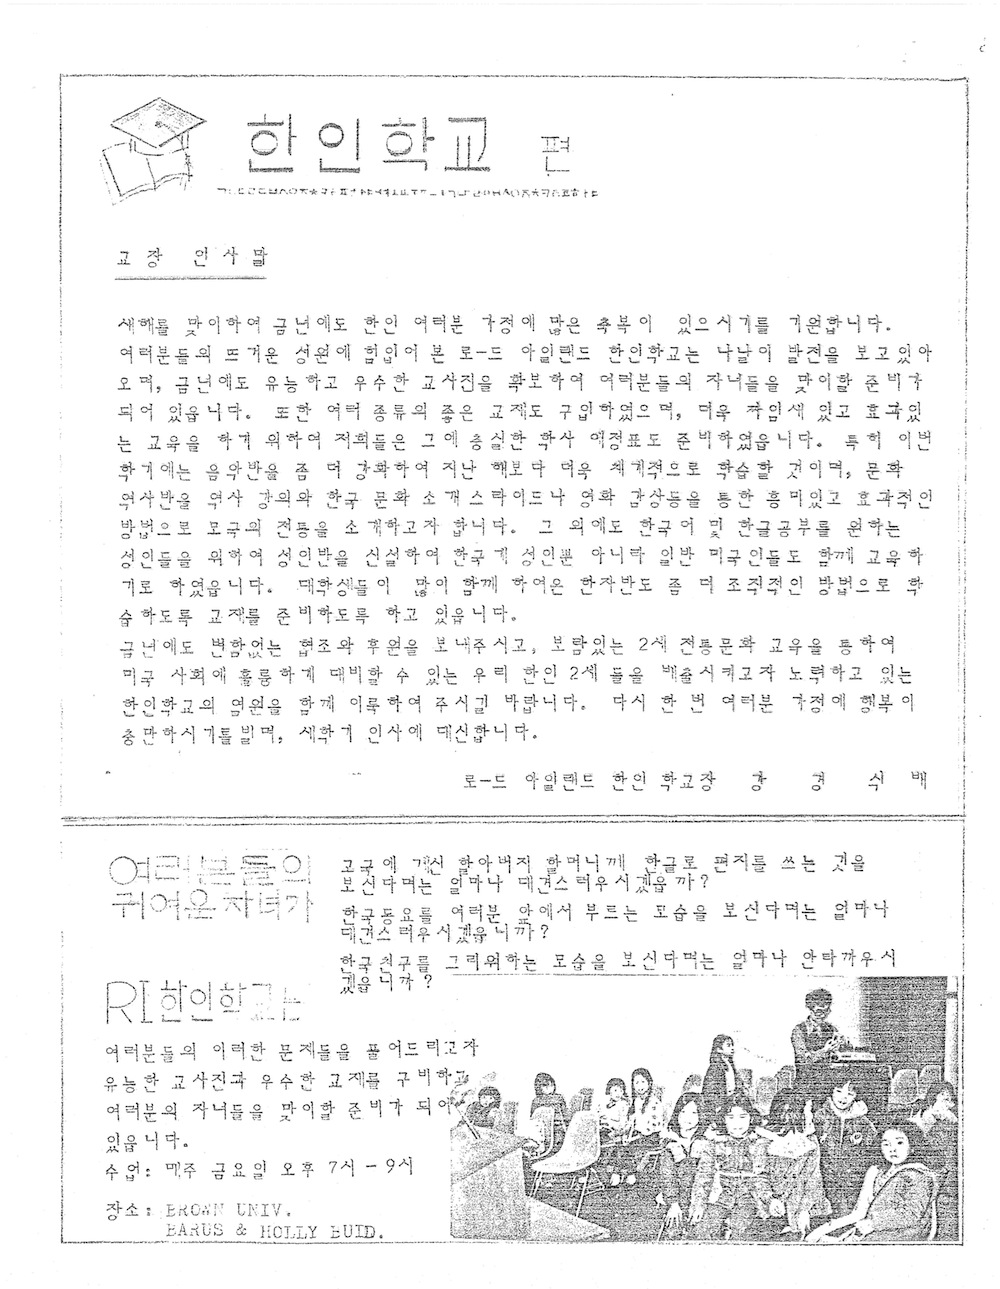 81 News Letter 6th Term_Page_08.jpg